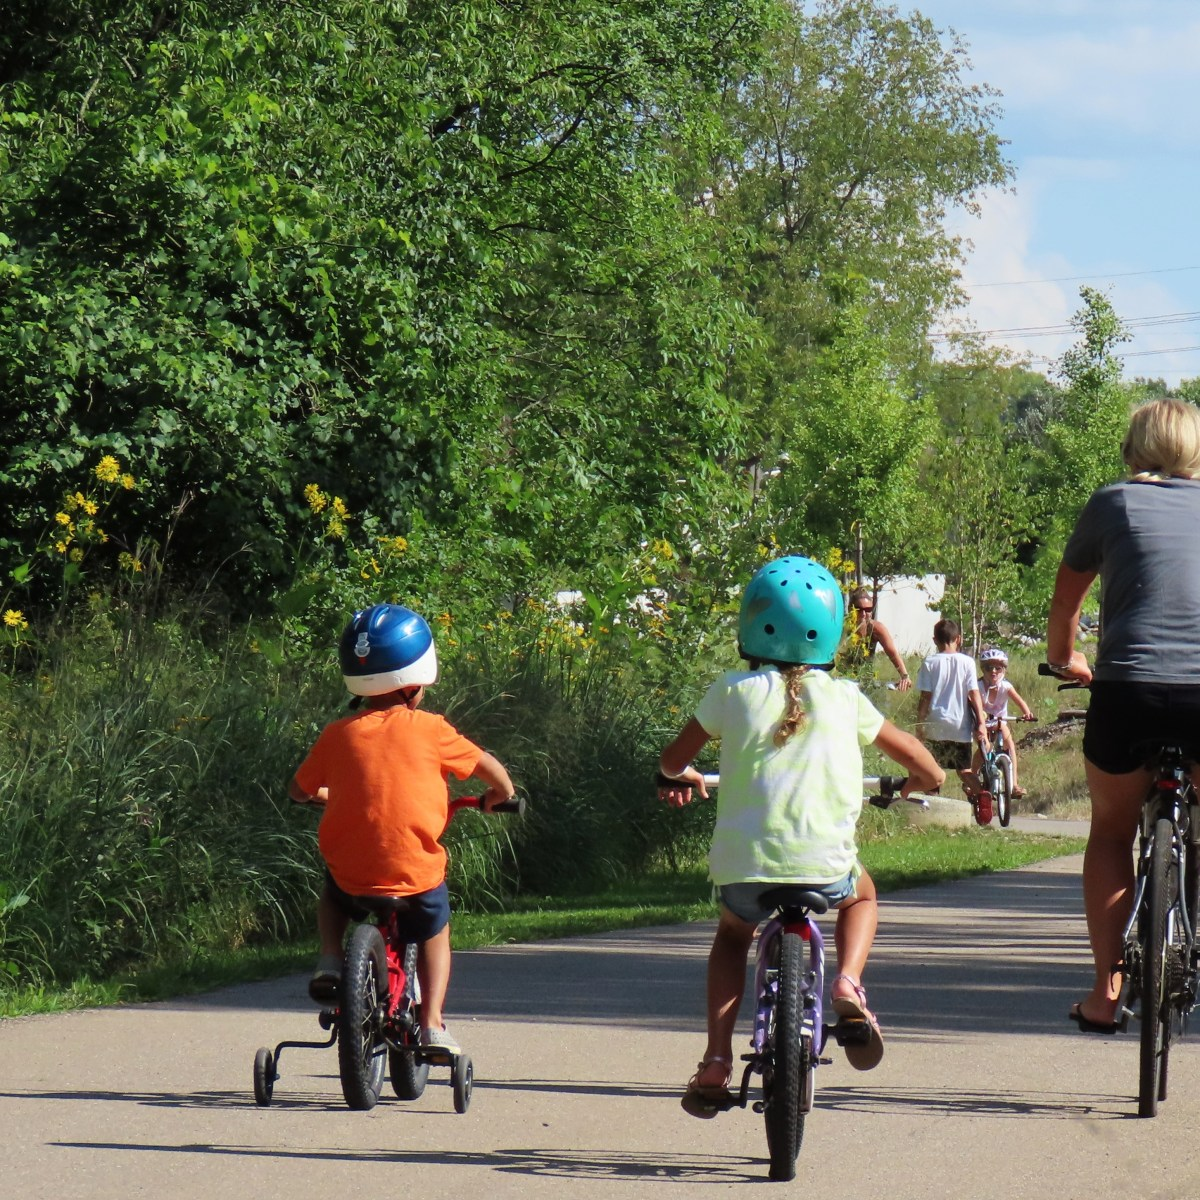 A woman and two children biking down a paved path, their backs are to the camera